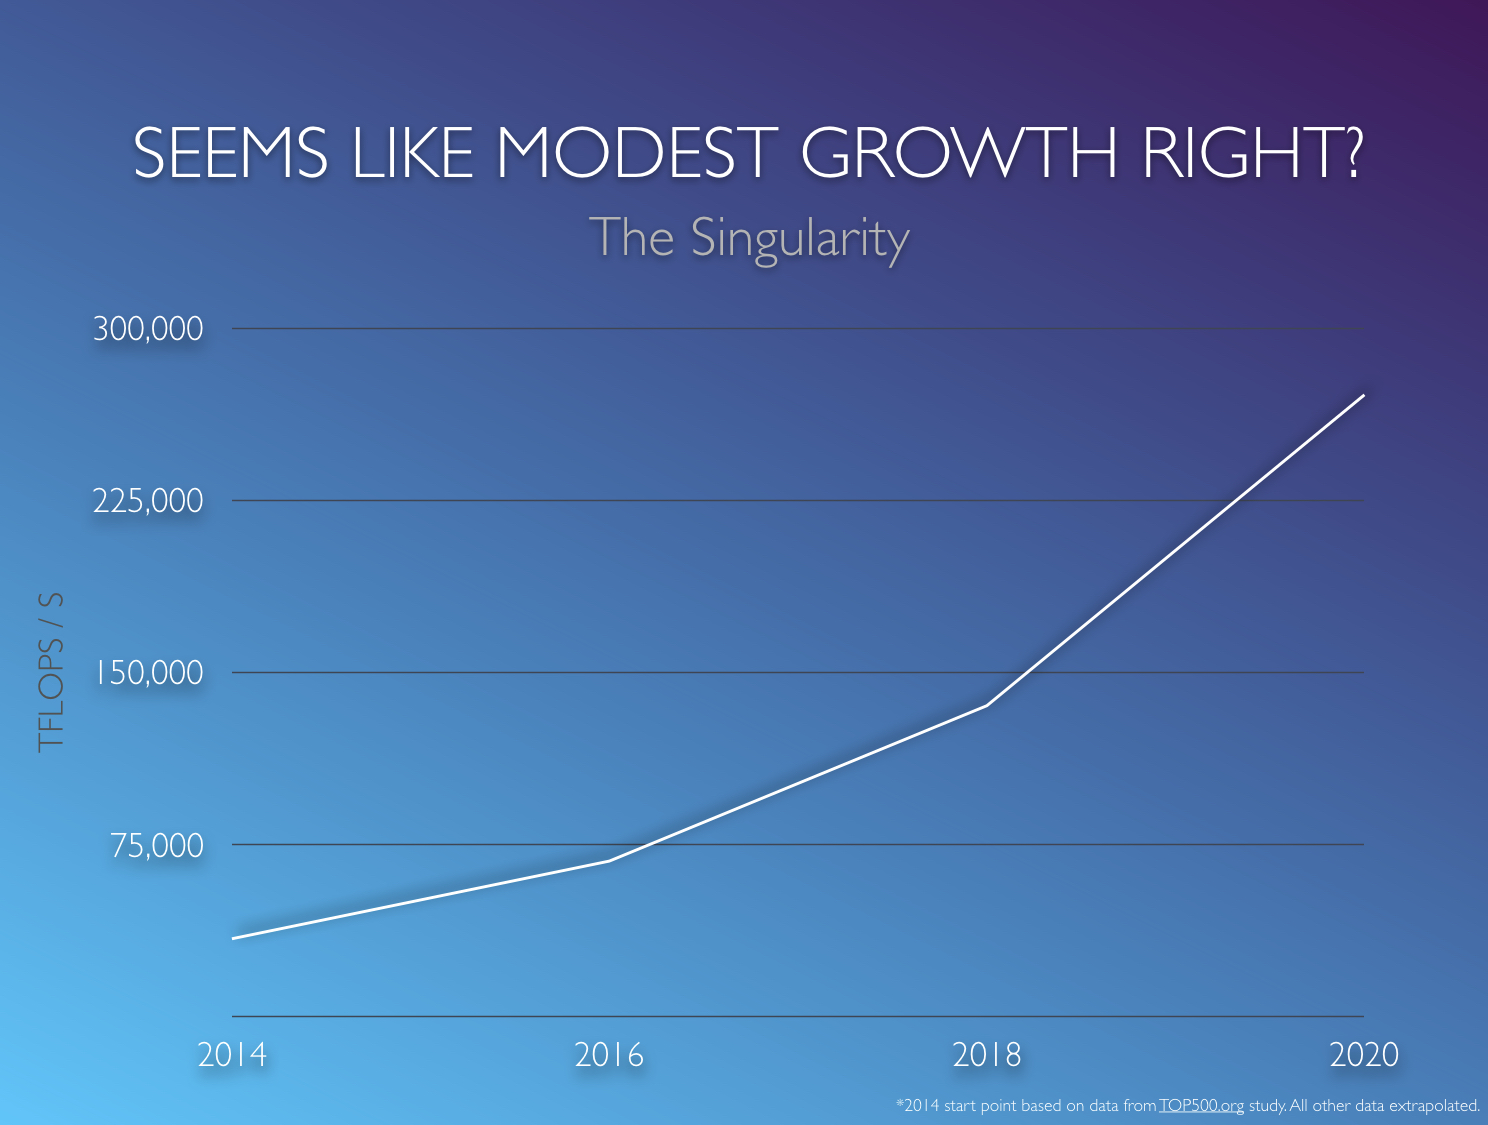 On the path to singularity, exponential growth can be deceiving.